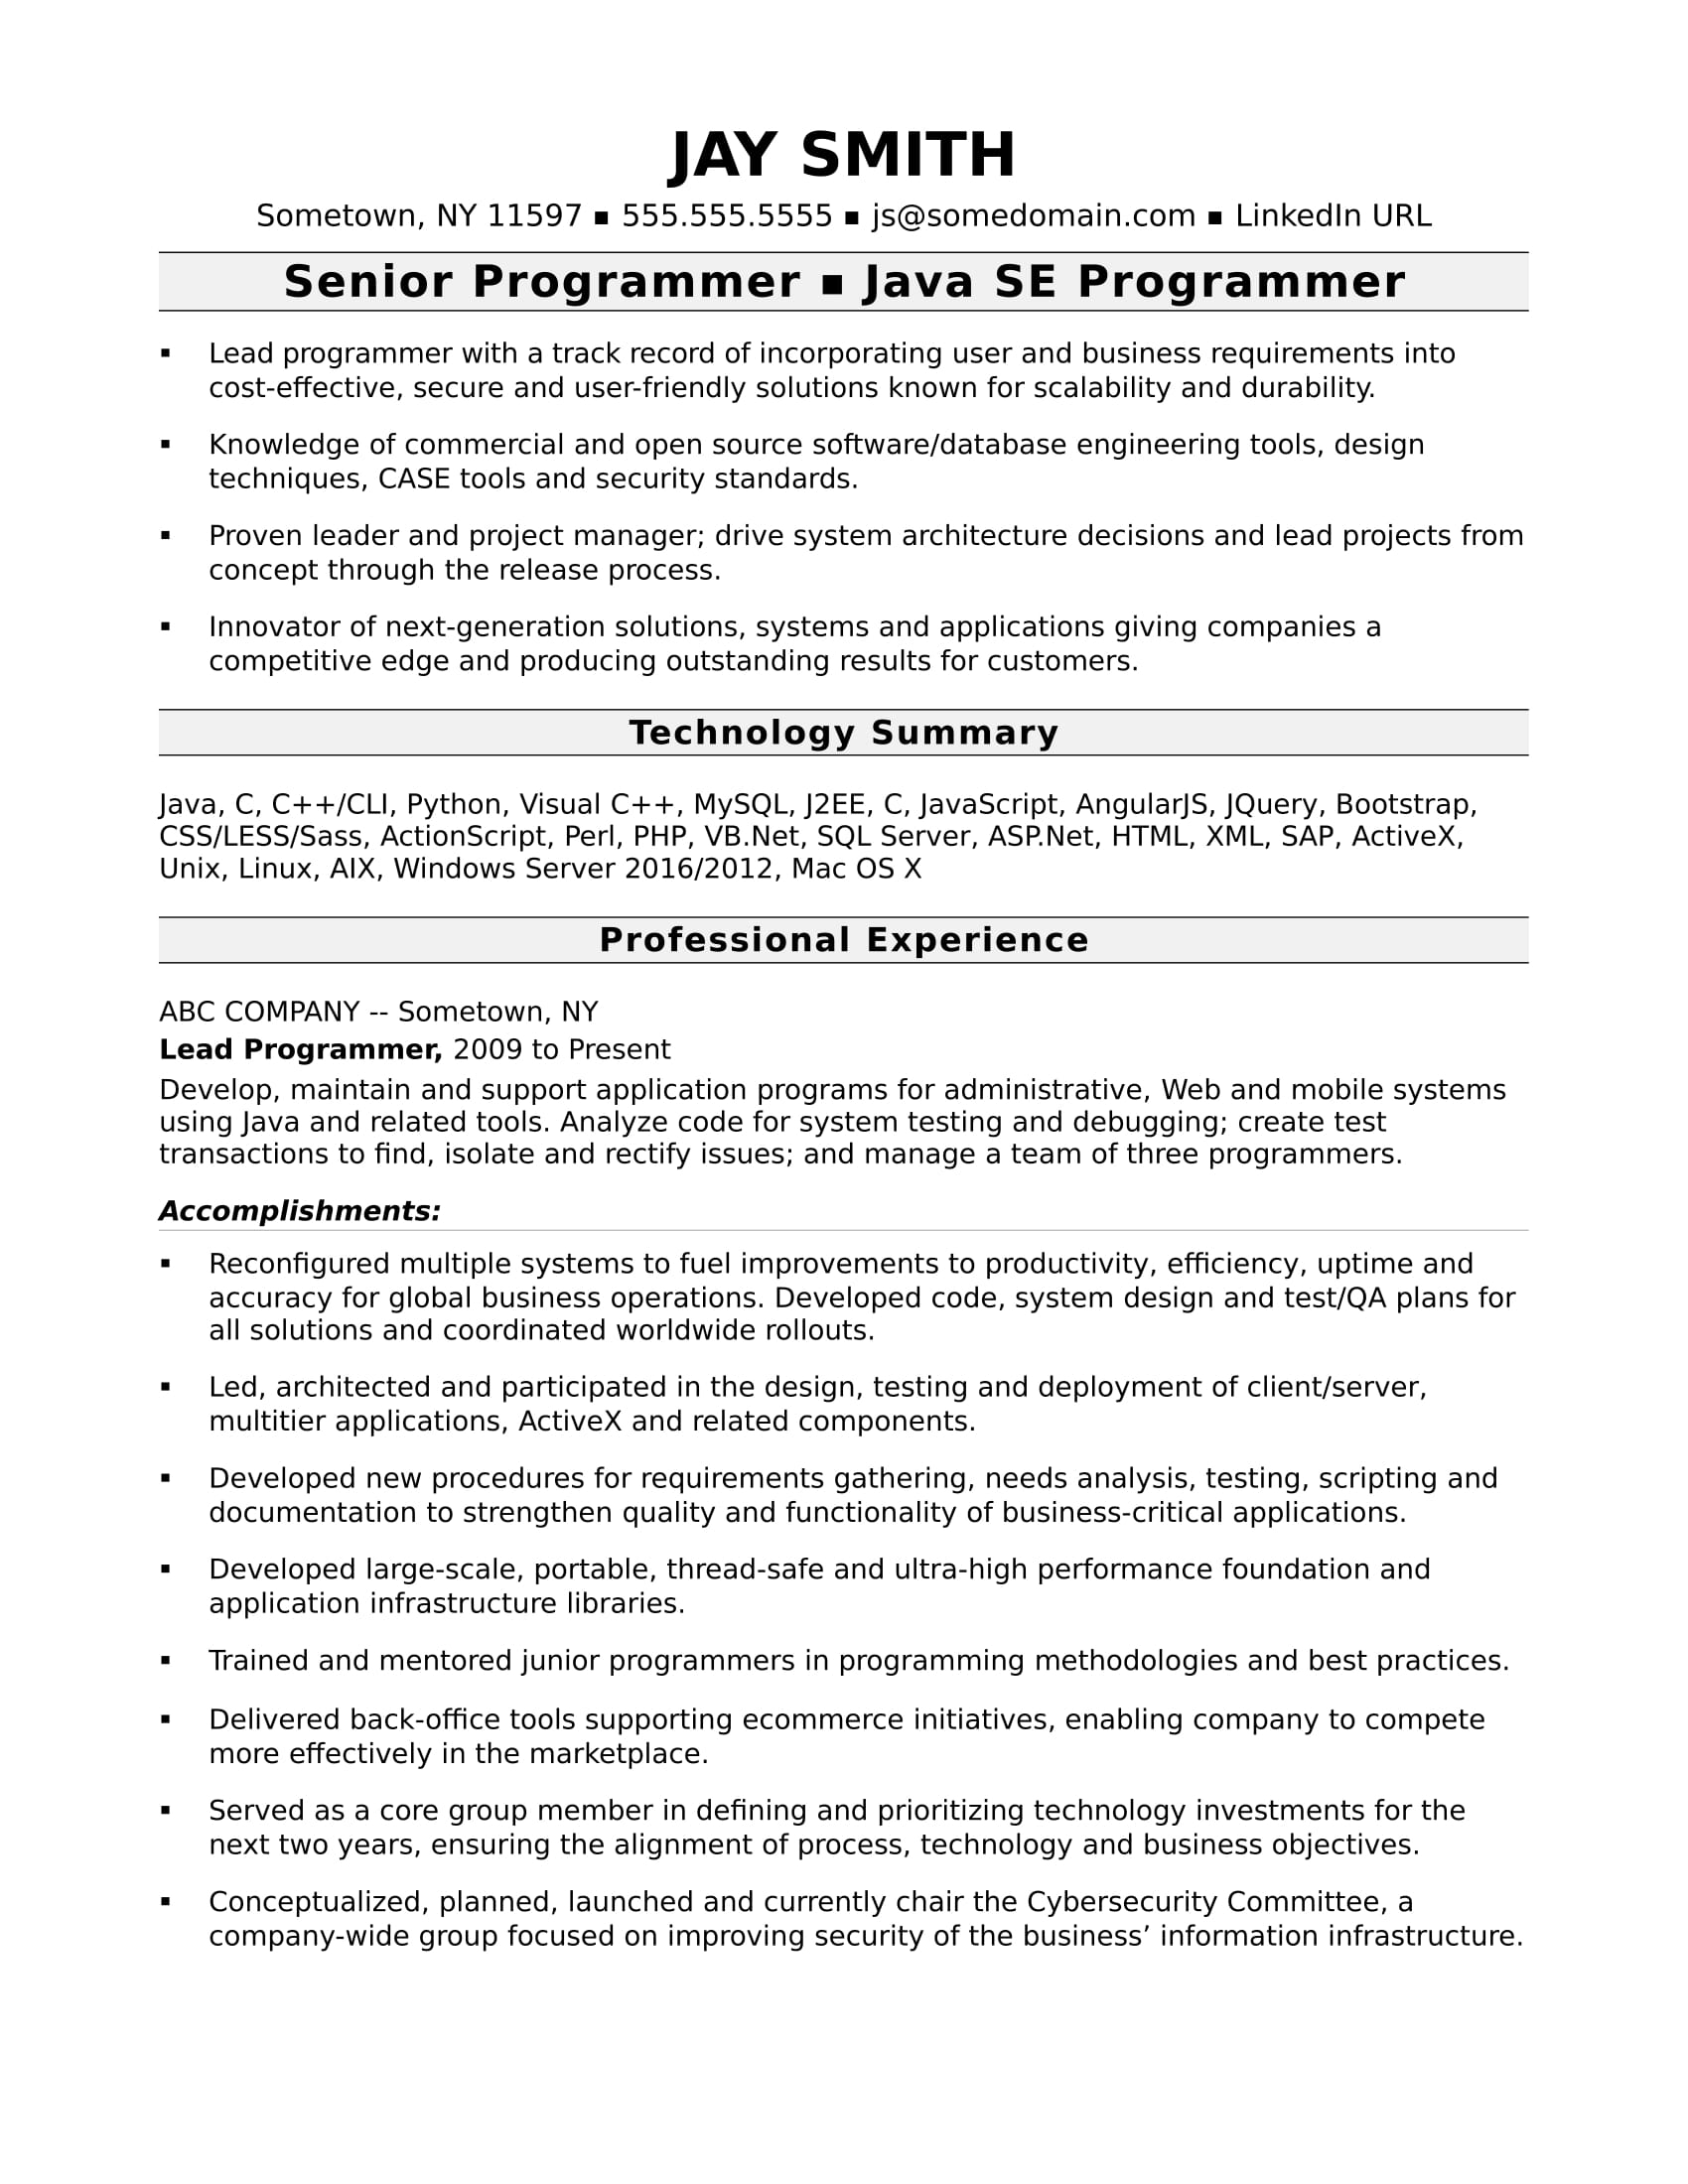 programmer resume template monster computer vision engineer experienced two sided job Resume Computer Vision Engineer Resume